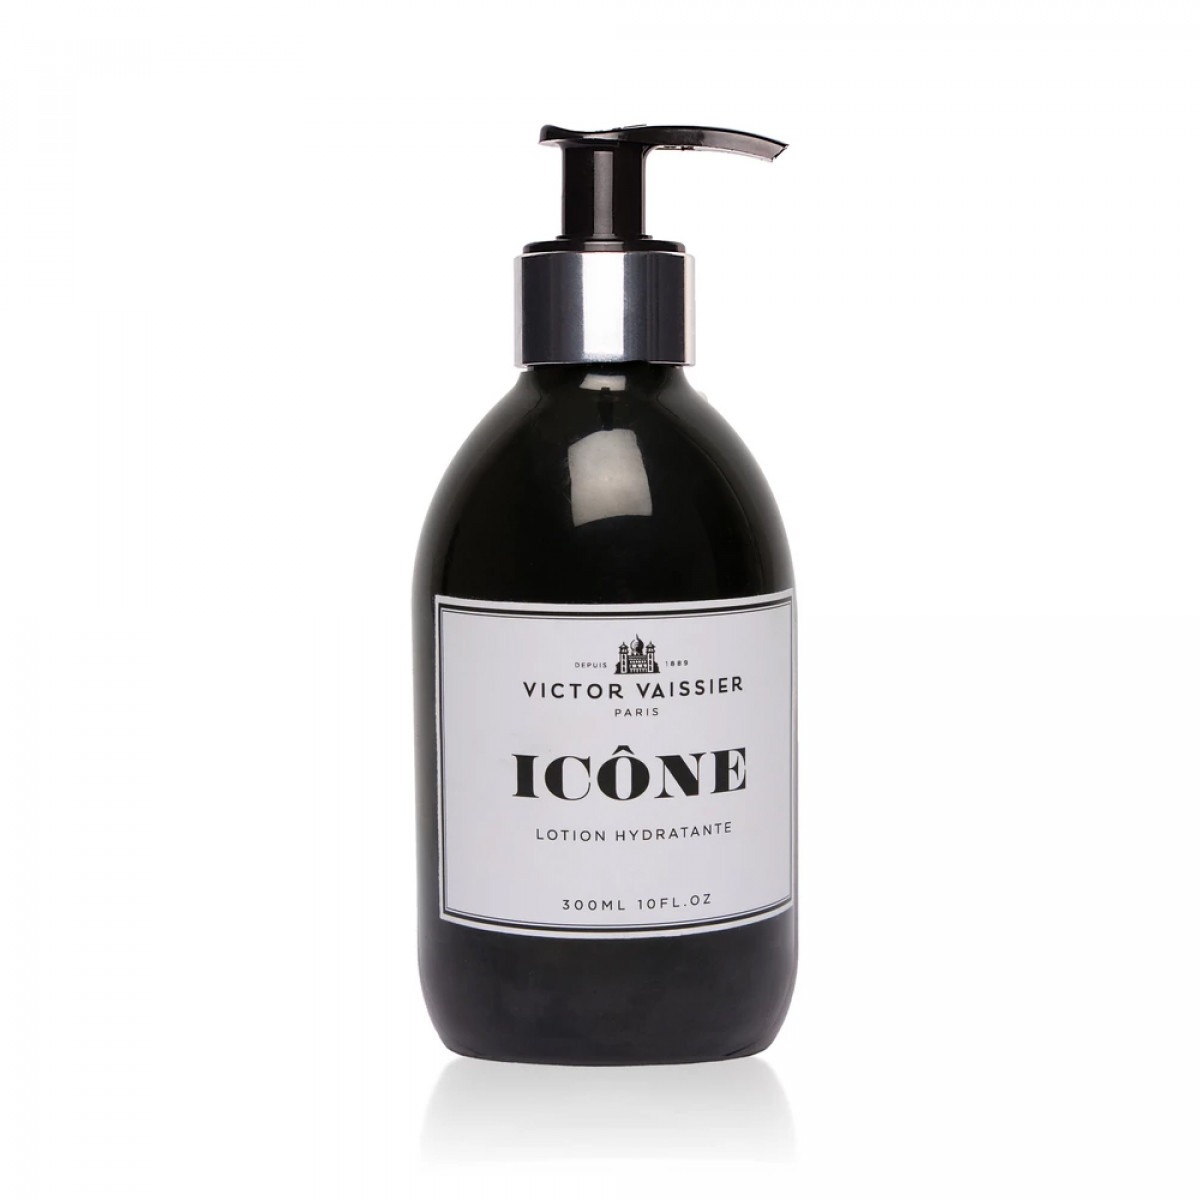 Victor Vaissier Icone Hydrating Lotion